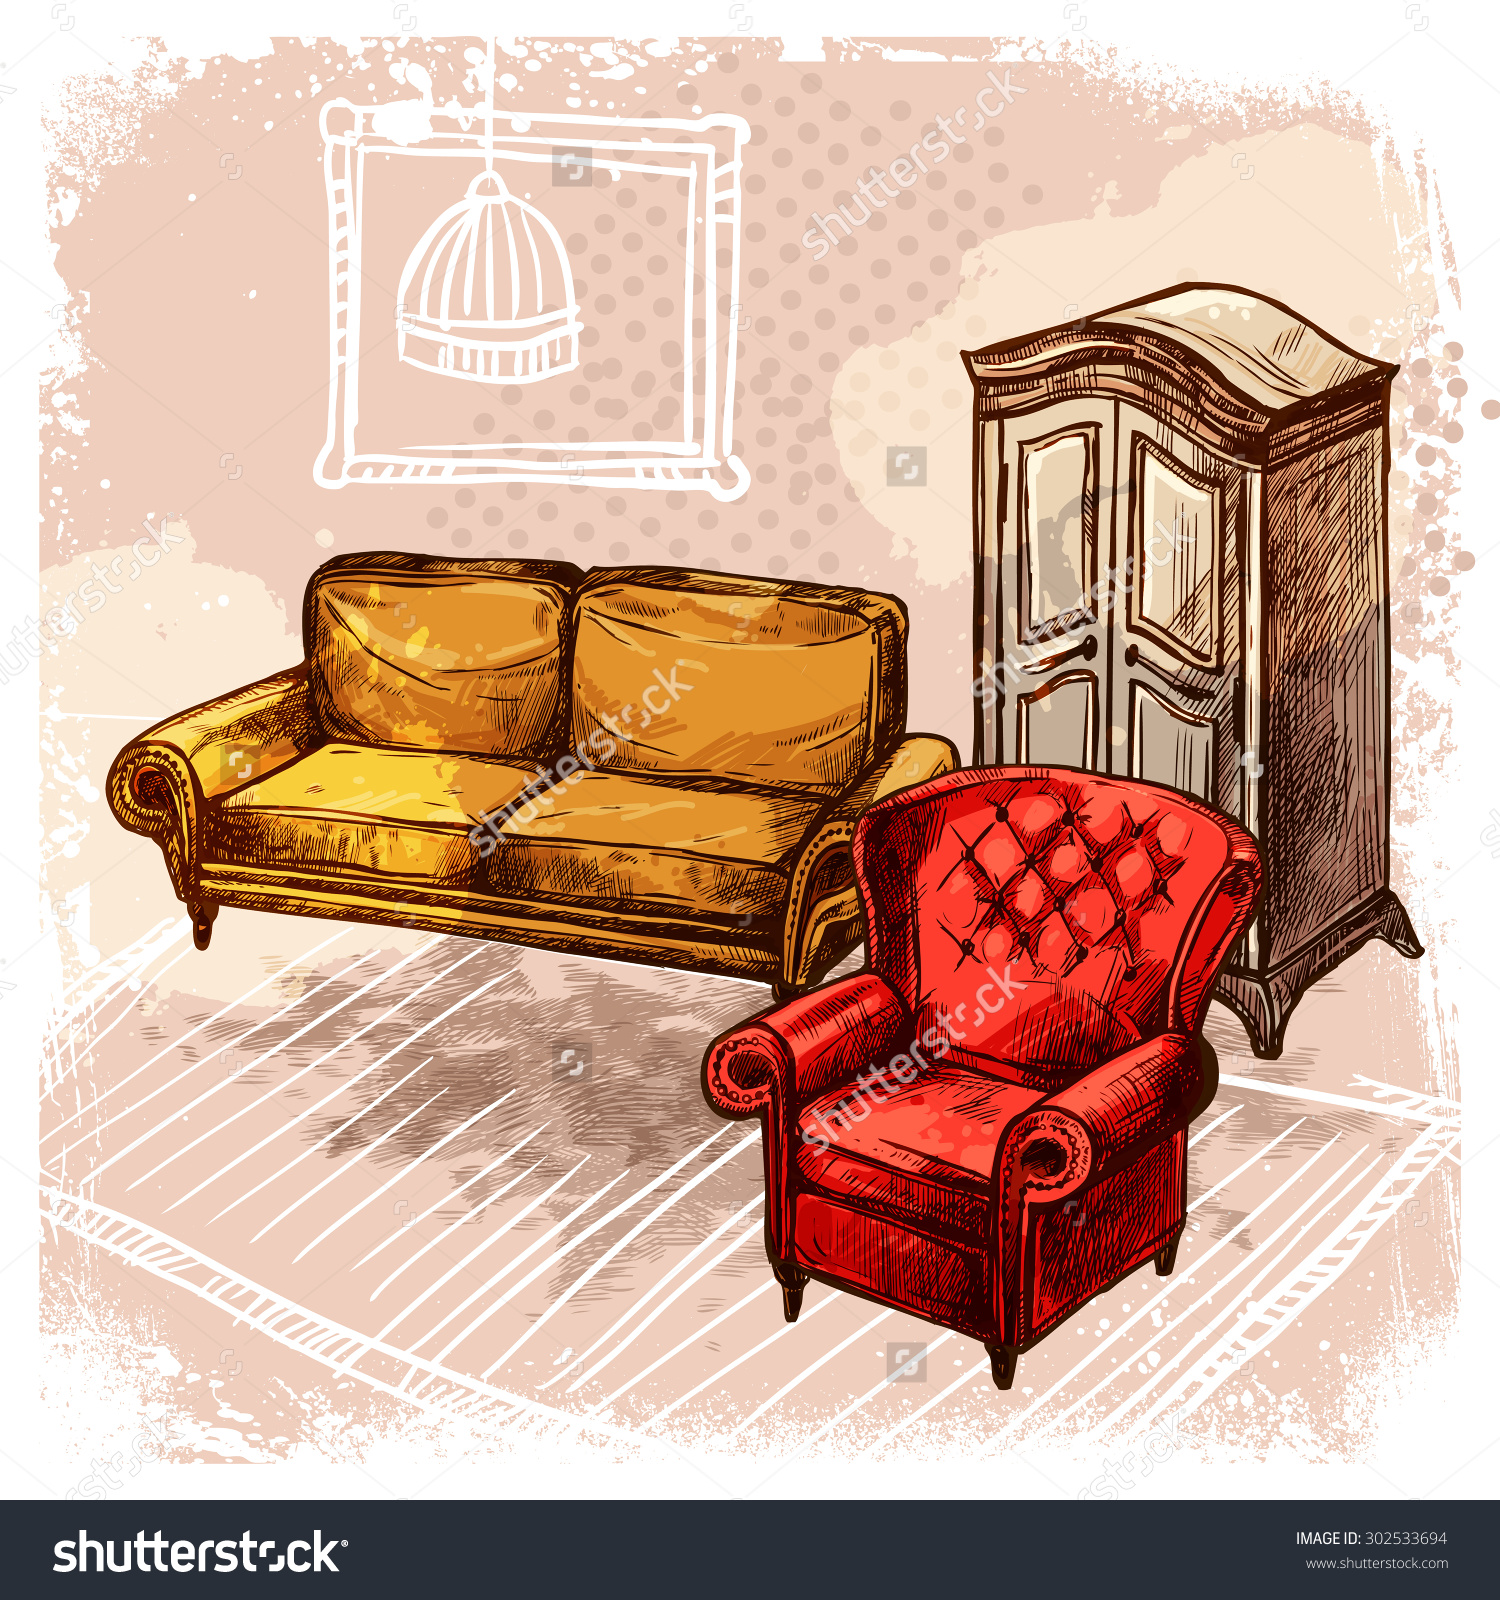 Retro Room Interior With Old Style Sketch Furniture Vector.